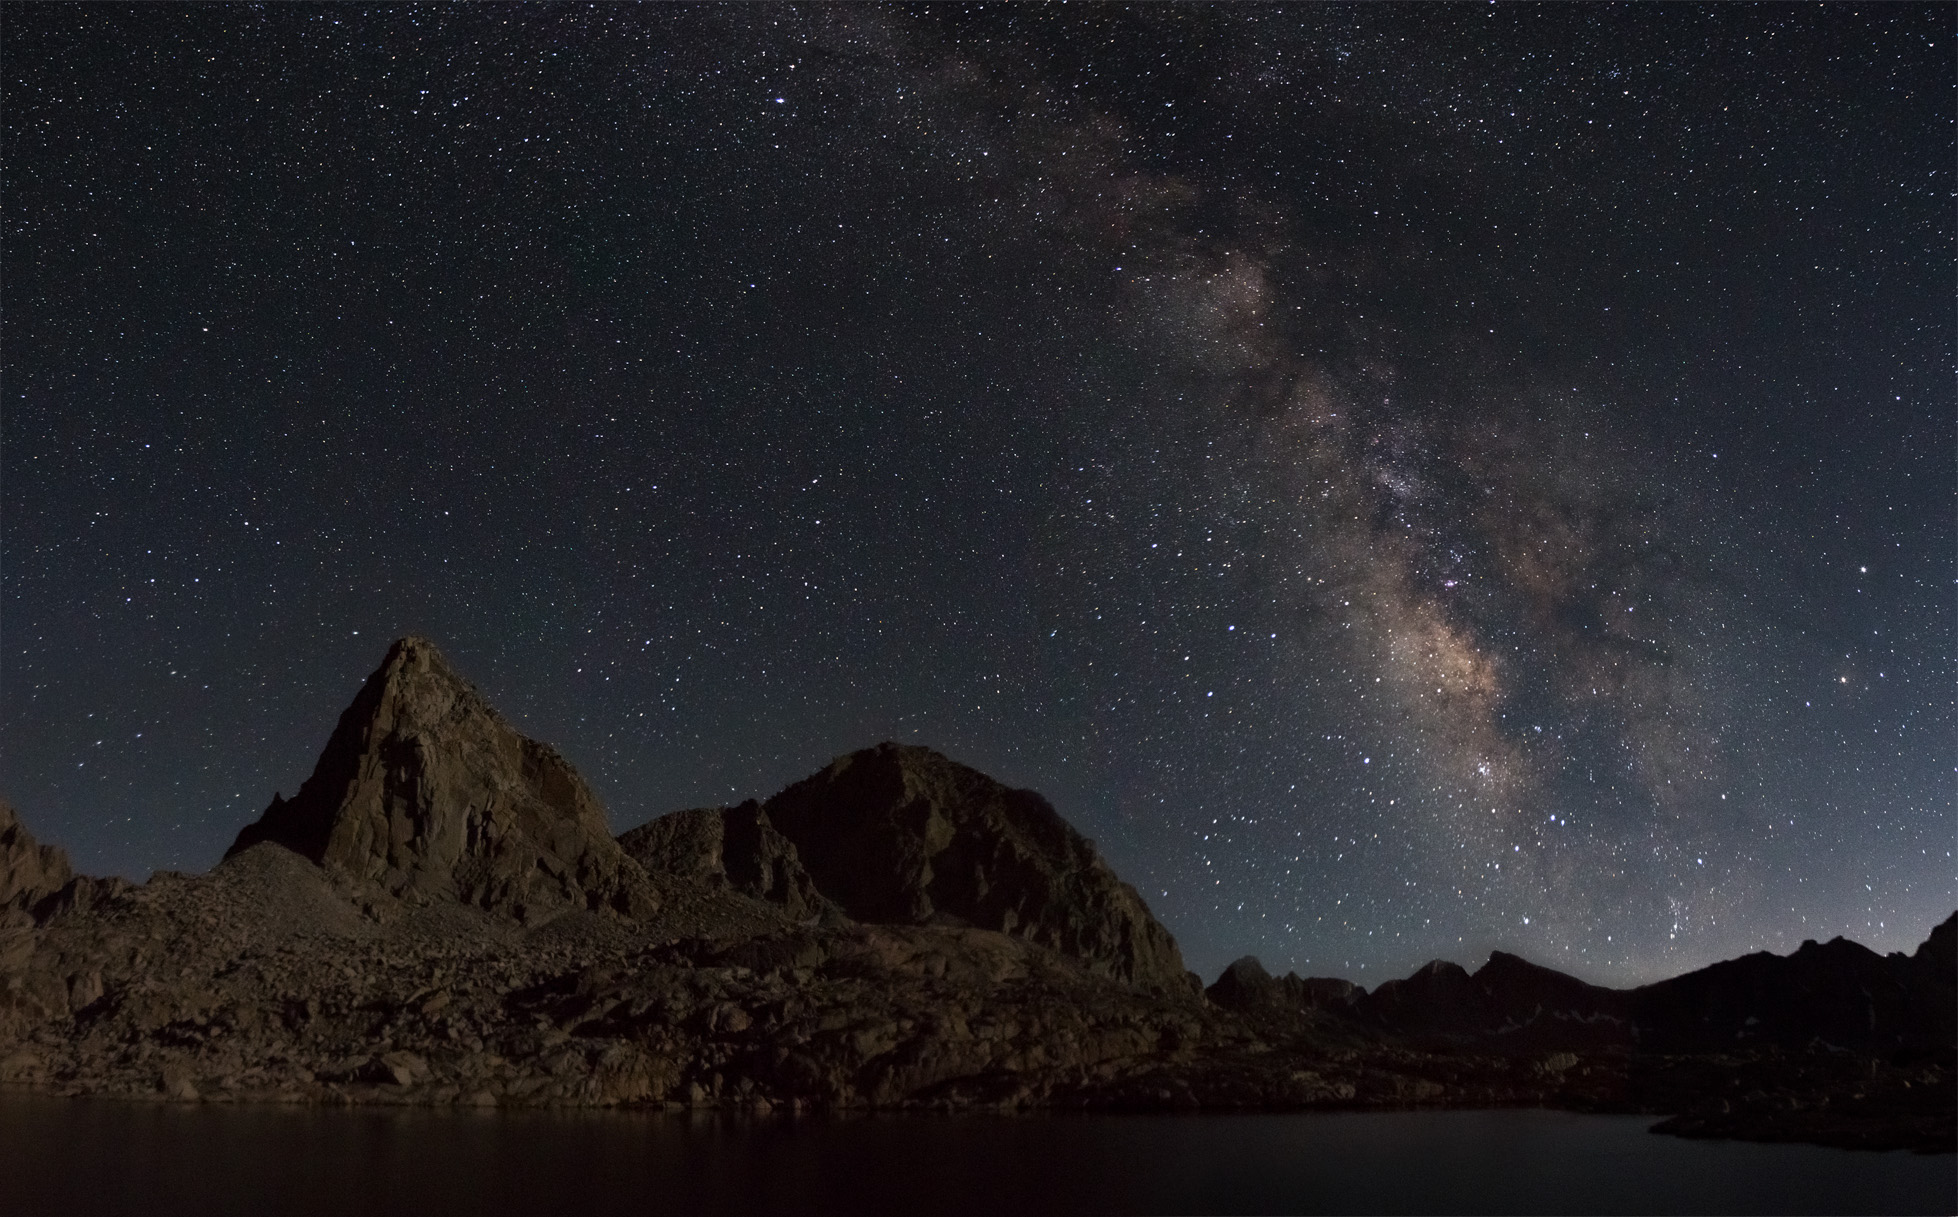 Milky Way & foreground tips?: Astrophotography Talk Forum Forum